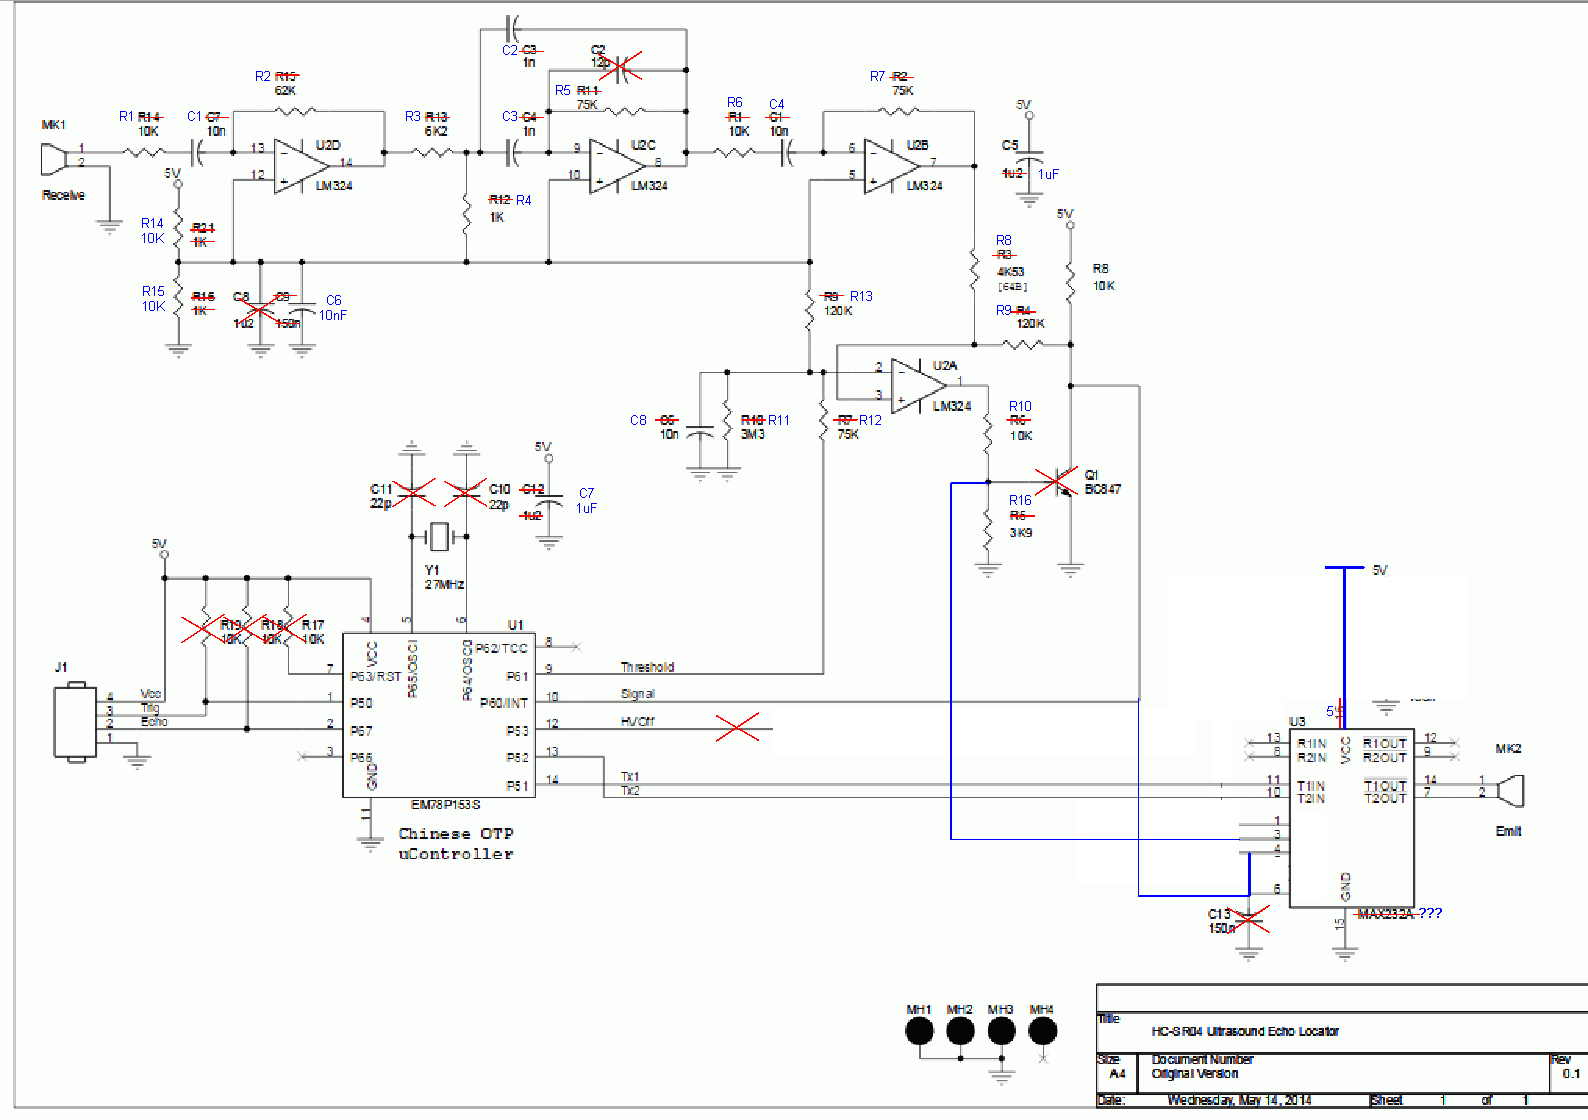 Building An Ultrasonic Sensor in addition Interfacing Hc Sr04 Ultrasound Sensor With Pic Microcontroller as well Faq openloopvsclosedloop in addition HC SR04 Ultrasonic Sensor in addition 3 Led Chaser Circuit Diagram. on ultrasonic sensor circuit